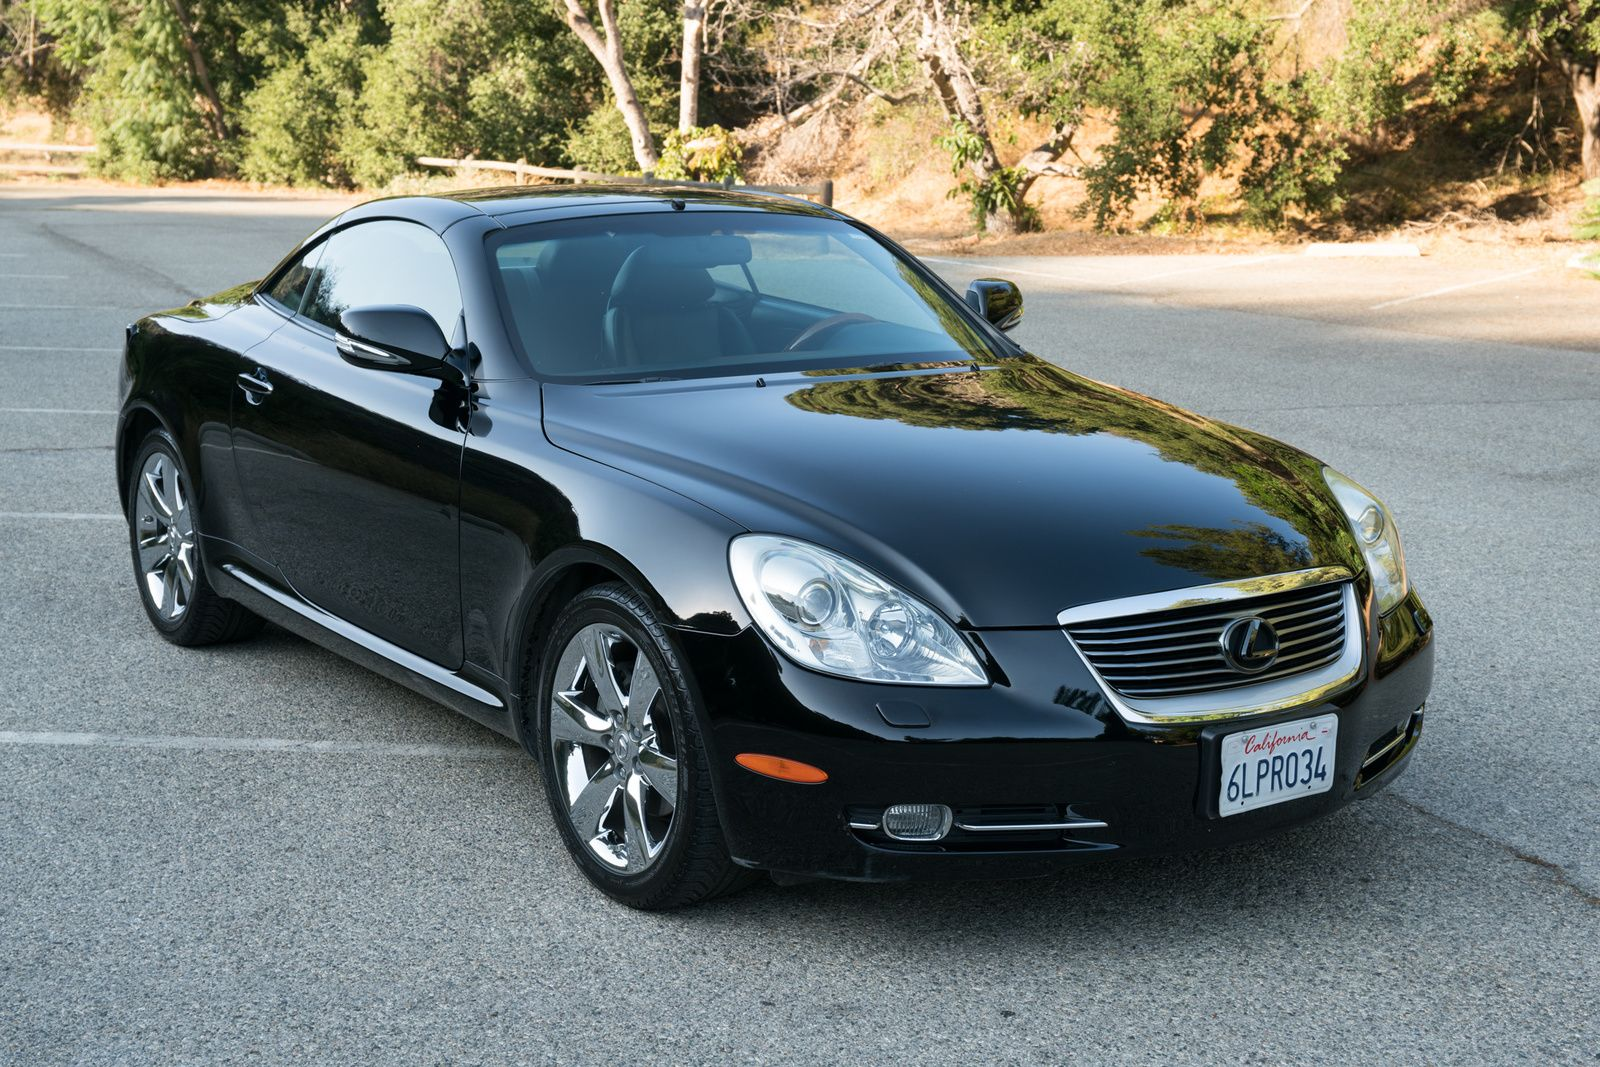 2010 Lexus Sc 430 Overview Cargurus New Car 2010 Lexus Cars